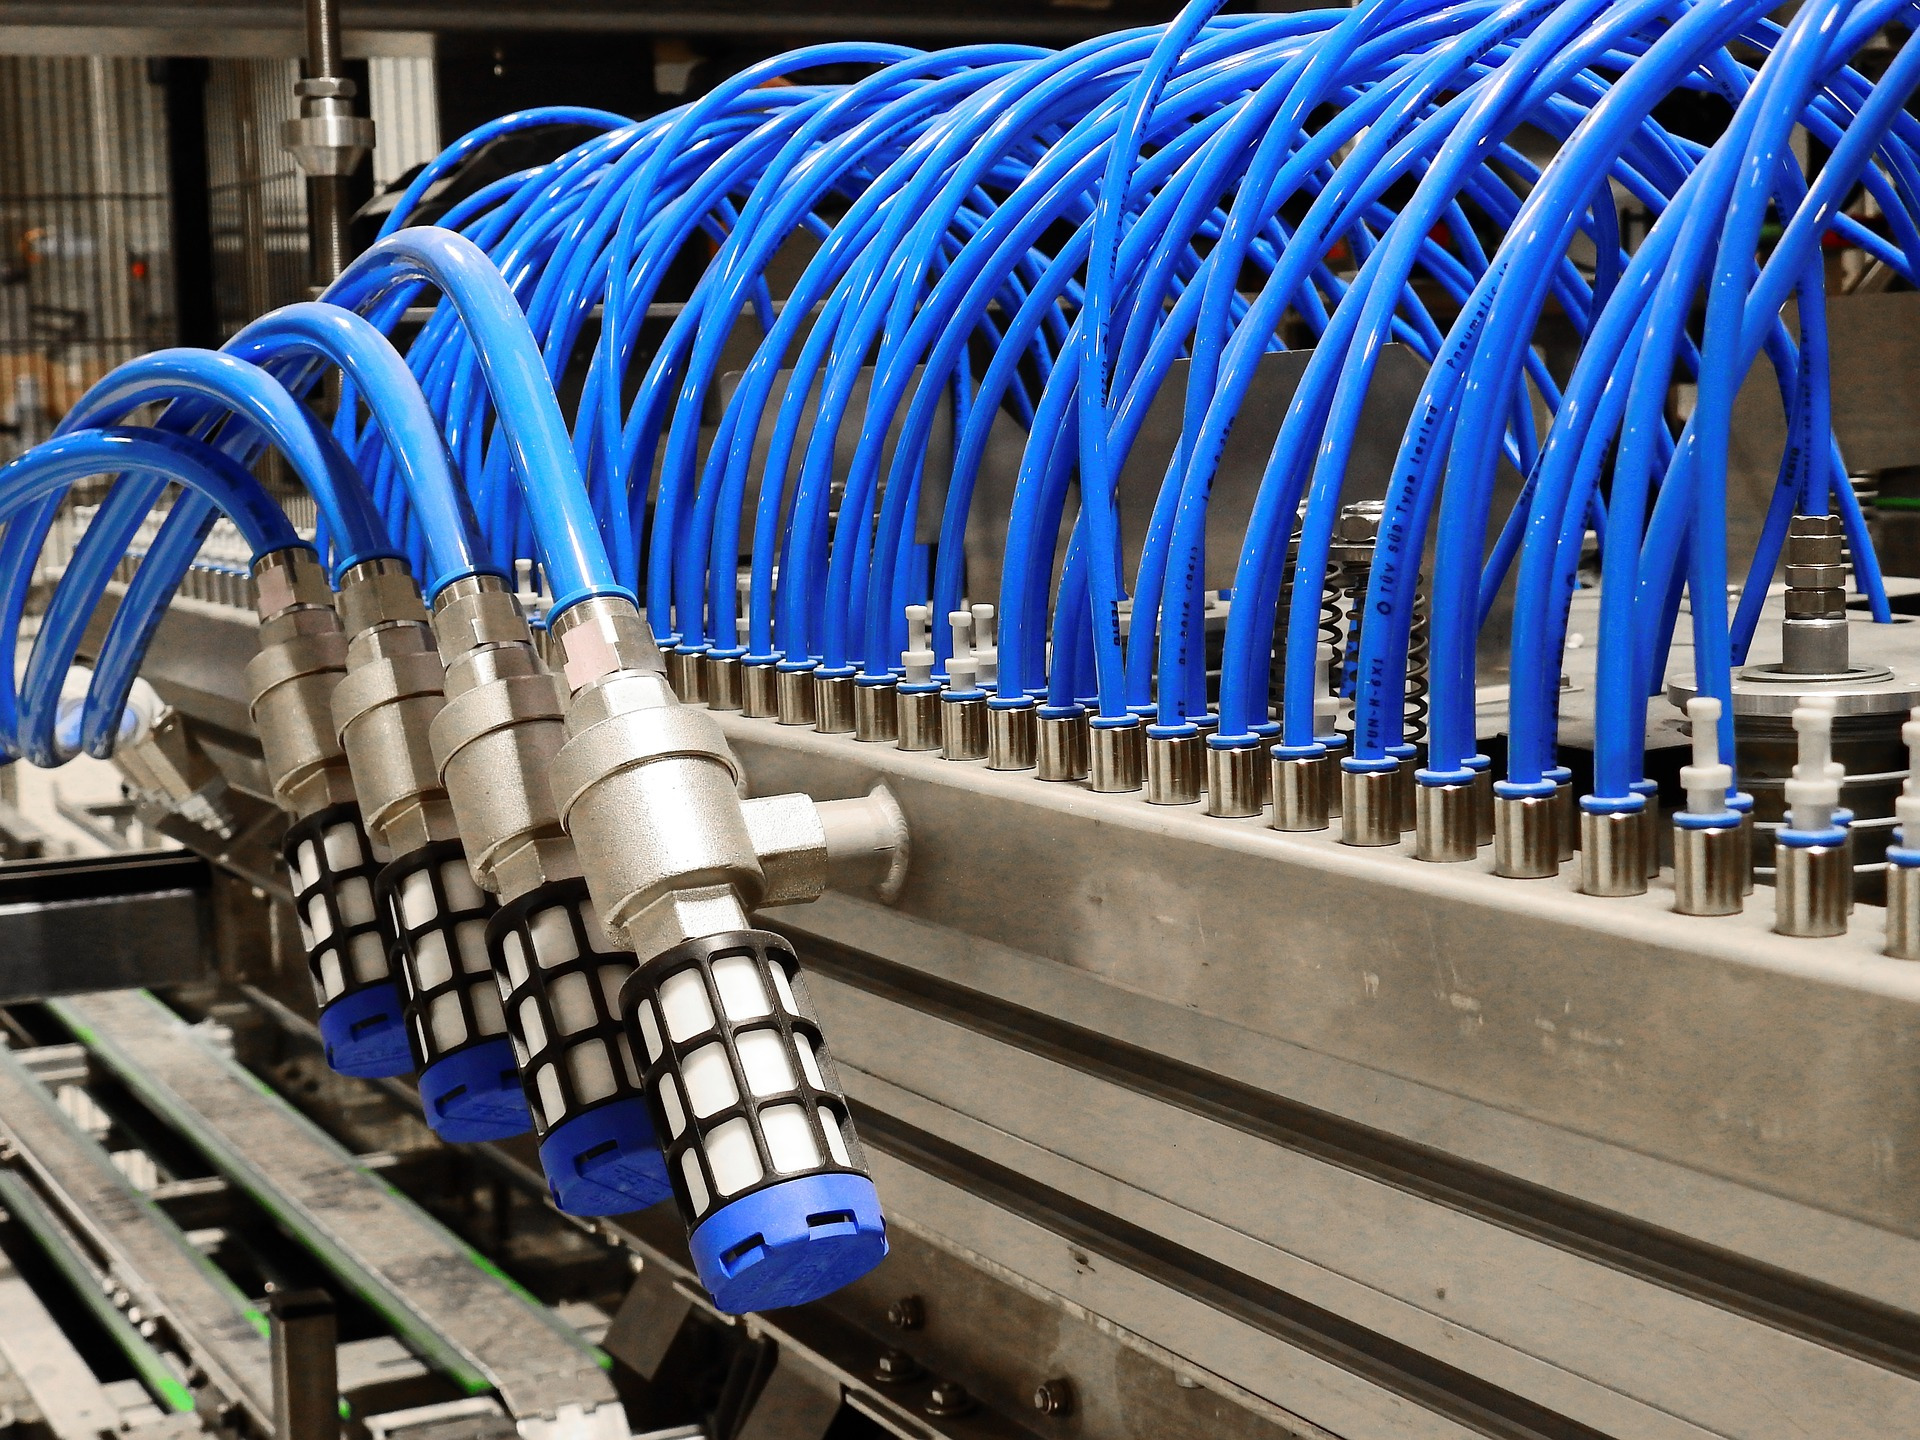 The Many Benefits Of Factory Compressed Air